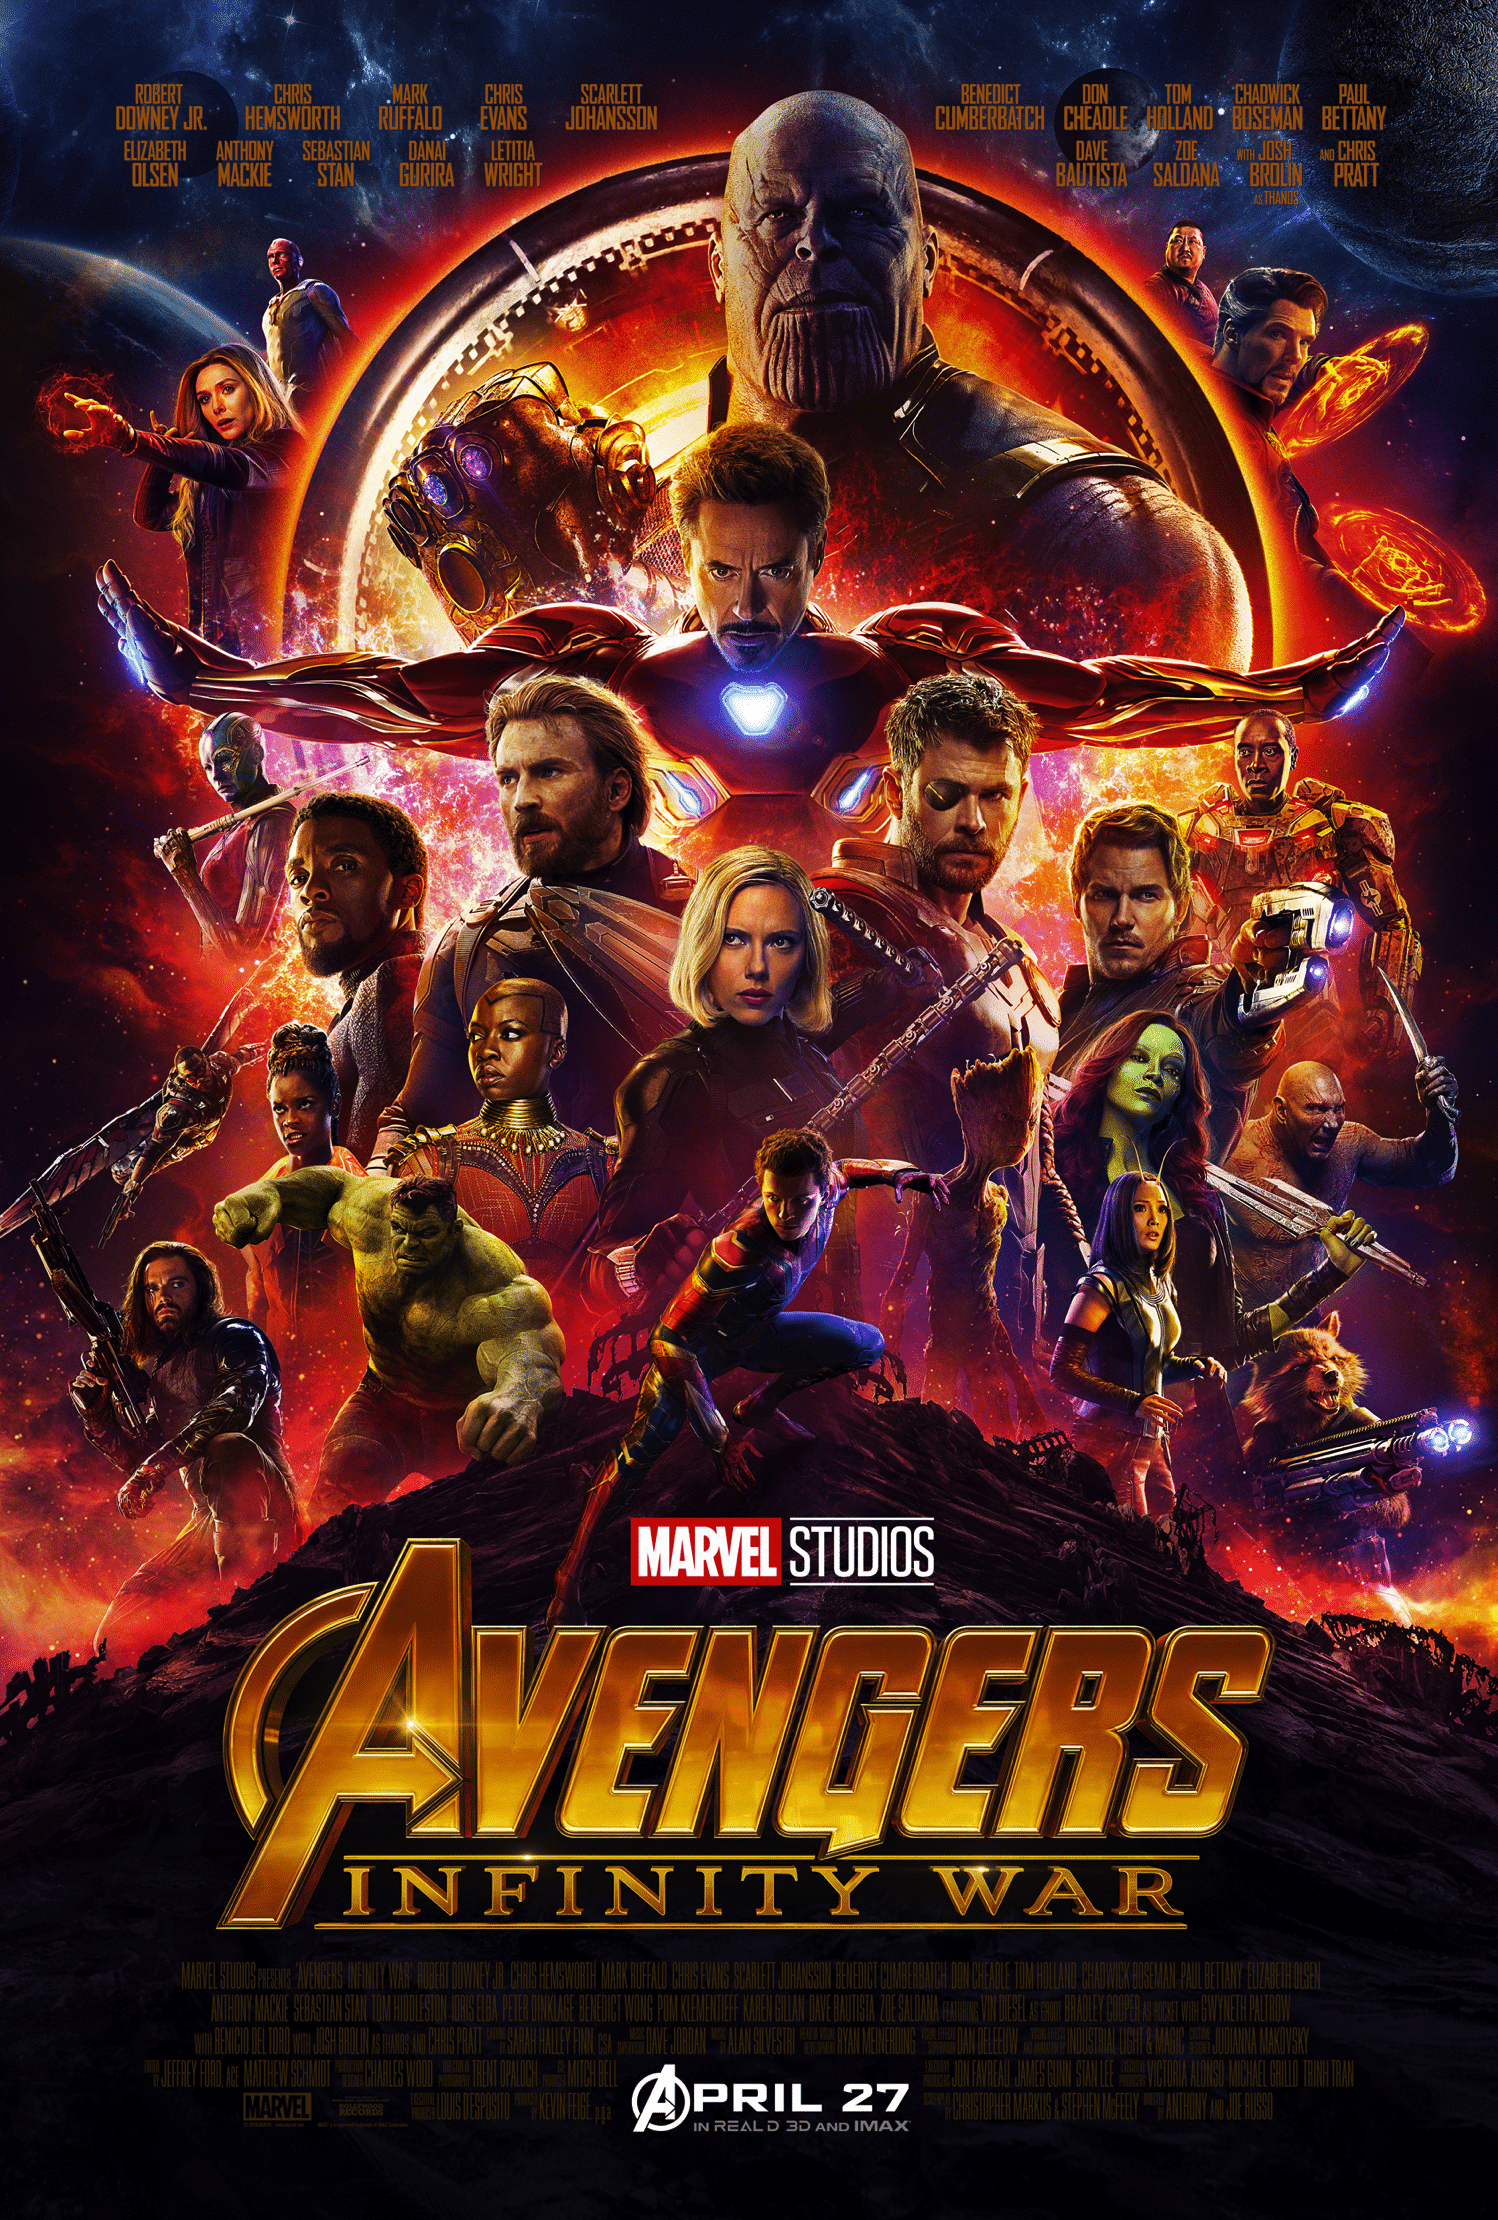 Avengers Infinity War poster.png